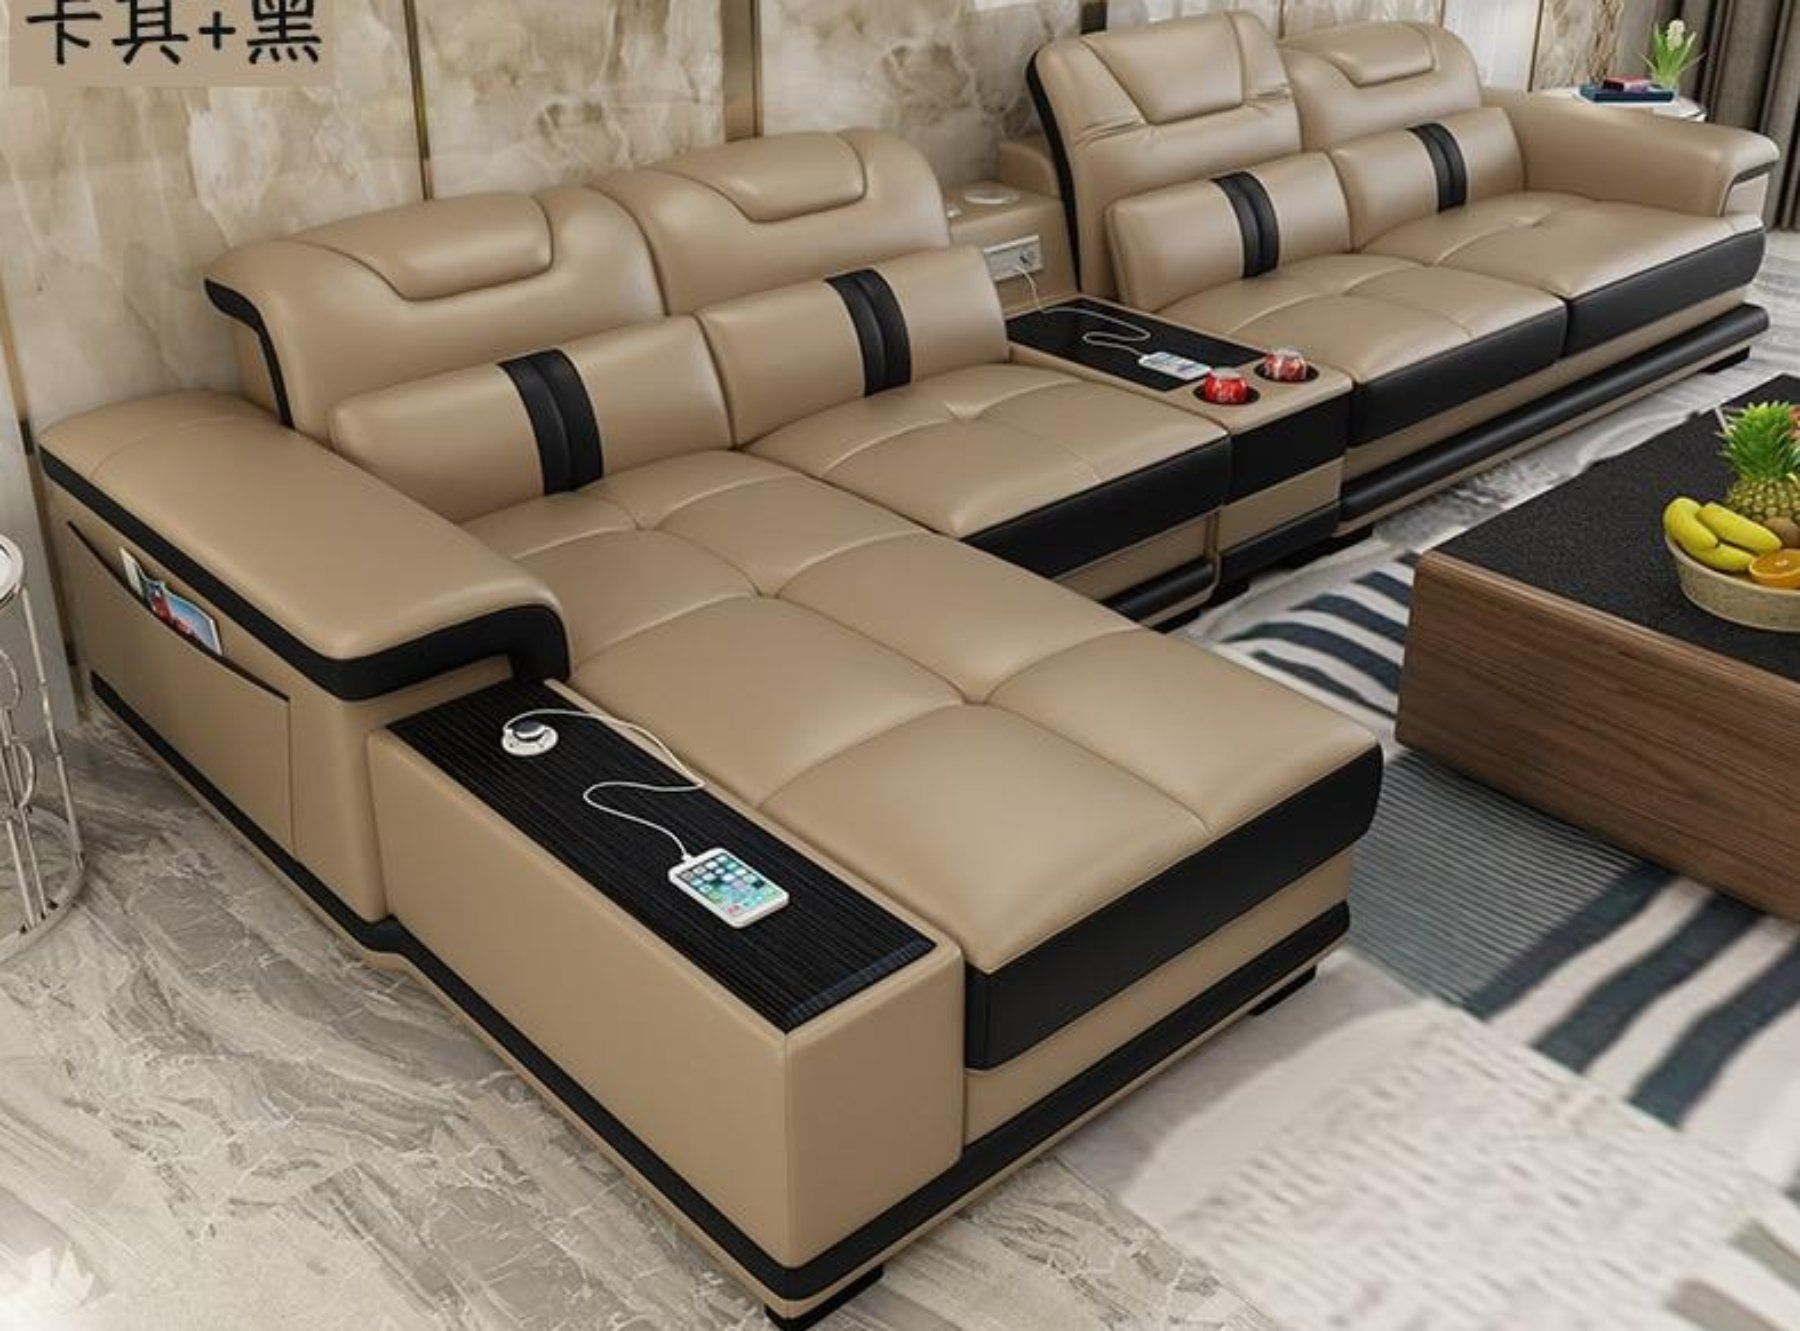 Sectional Comfort Leather Sofa For Home Furniture Living Room Sofa Set Living Room Leather Leather Sofa Living Room